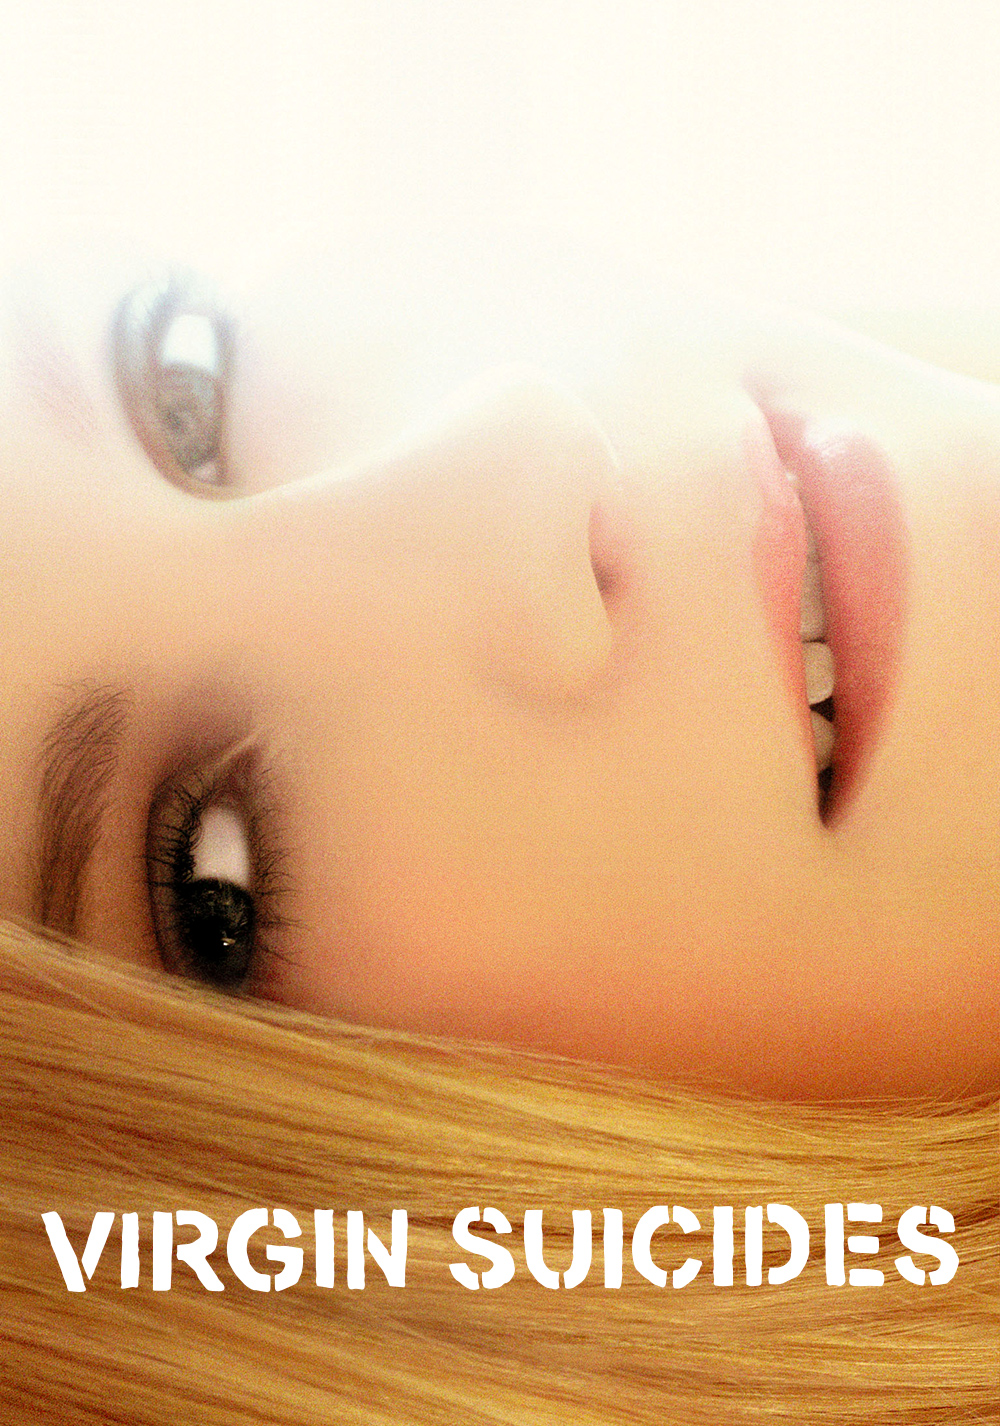 Image result for the virgin suicides poster